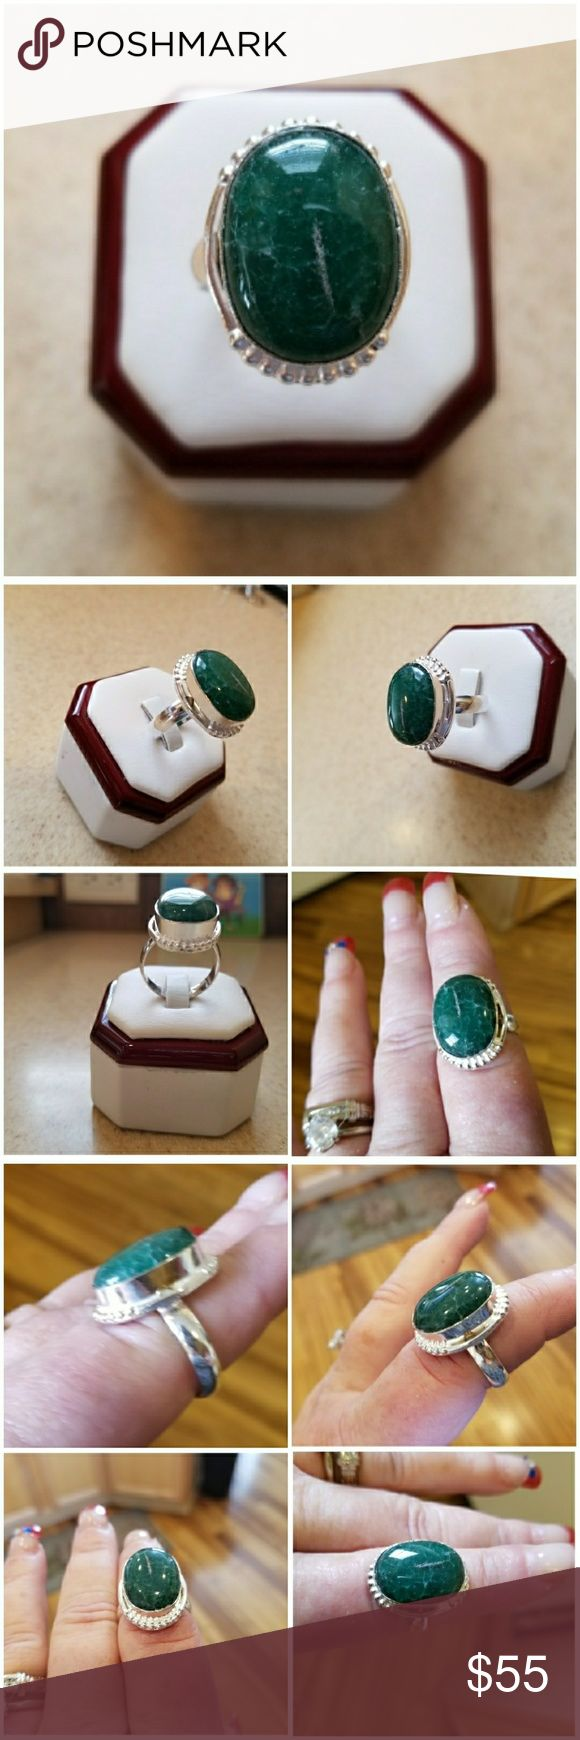 Genuine 6ct Zambian Emerald Ring Size 9.5 Beautiful Natural !Emerald!  Set in 925 stamped Solid Sterling Silver. Please see all pictures for more detail. Brand New. Never Worn. WHOLESALE Prices Always!!! Jewelry Rings